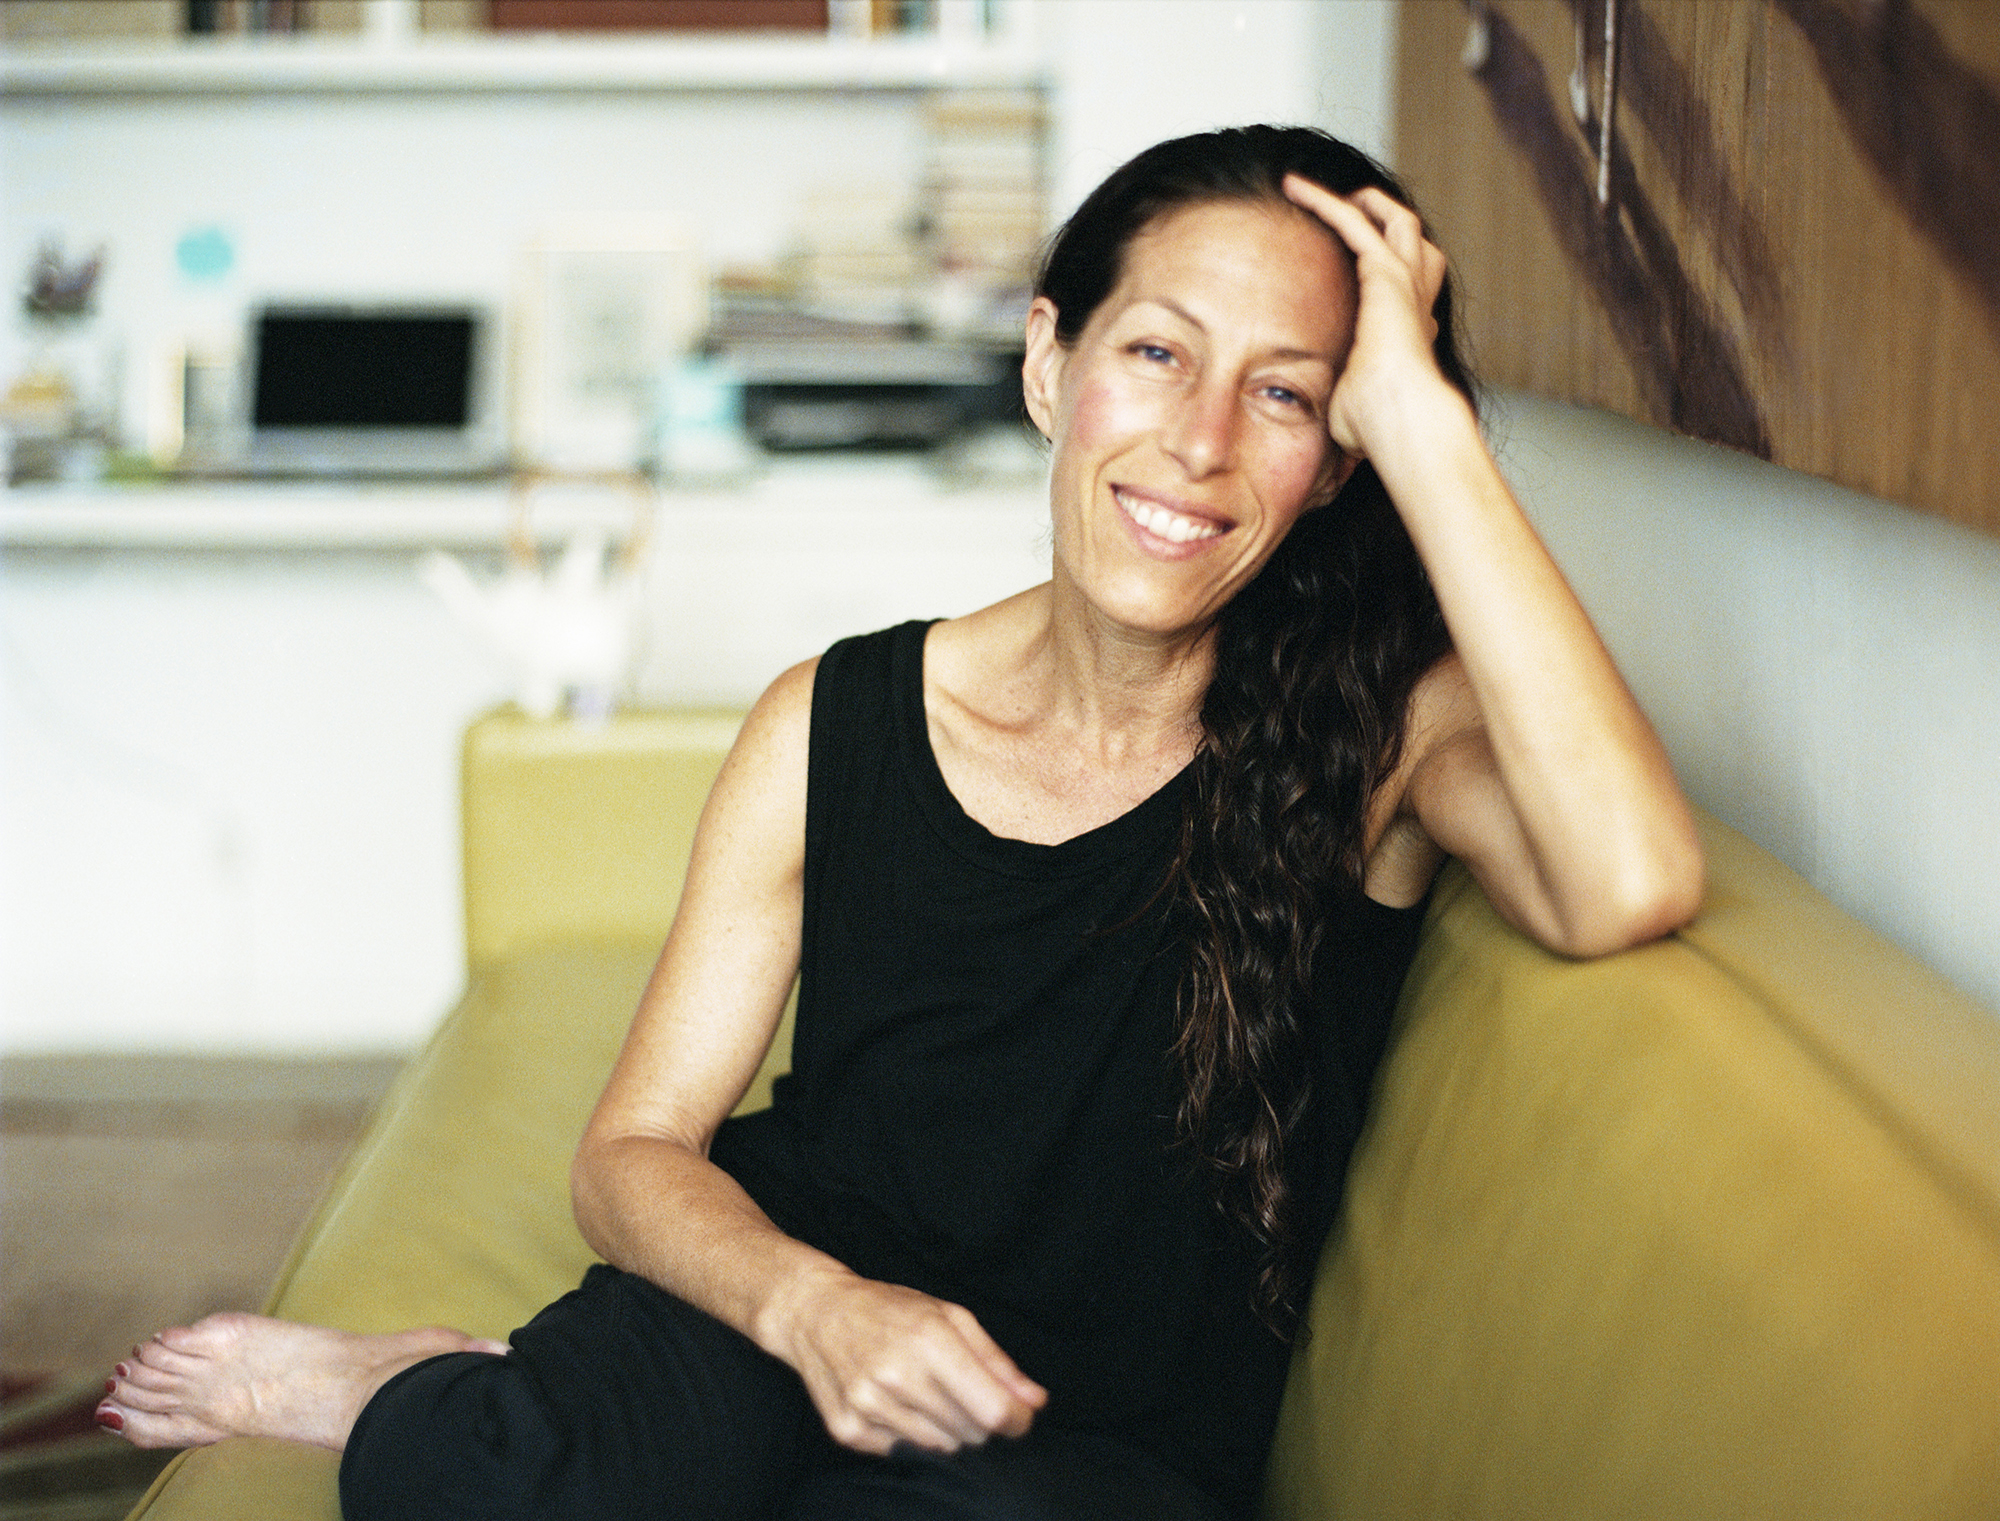 Ariel Leve - Photo credit: Catherine Talese